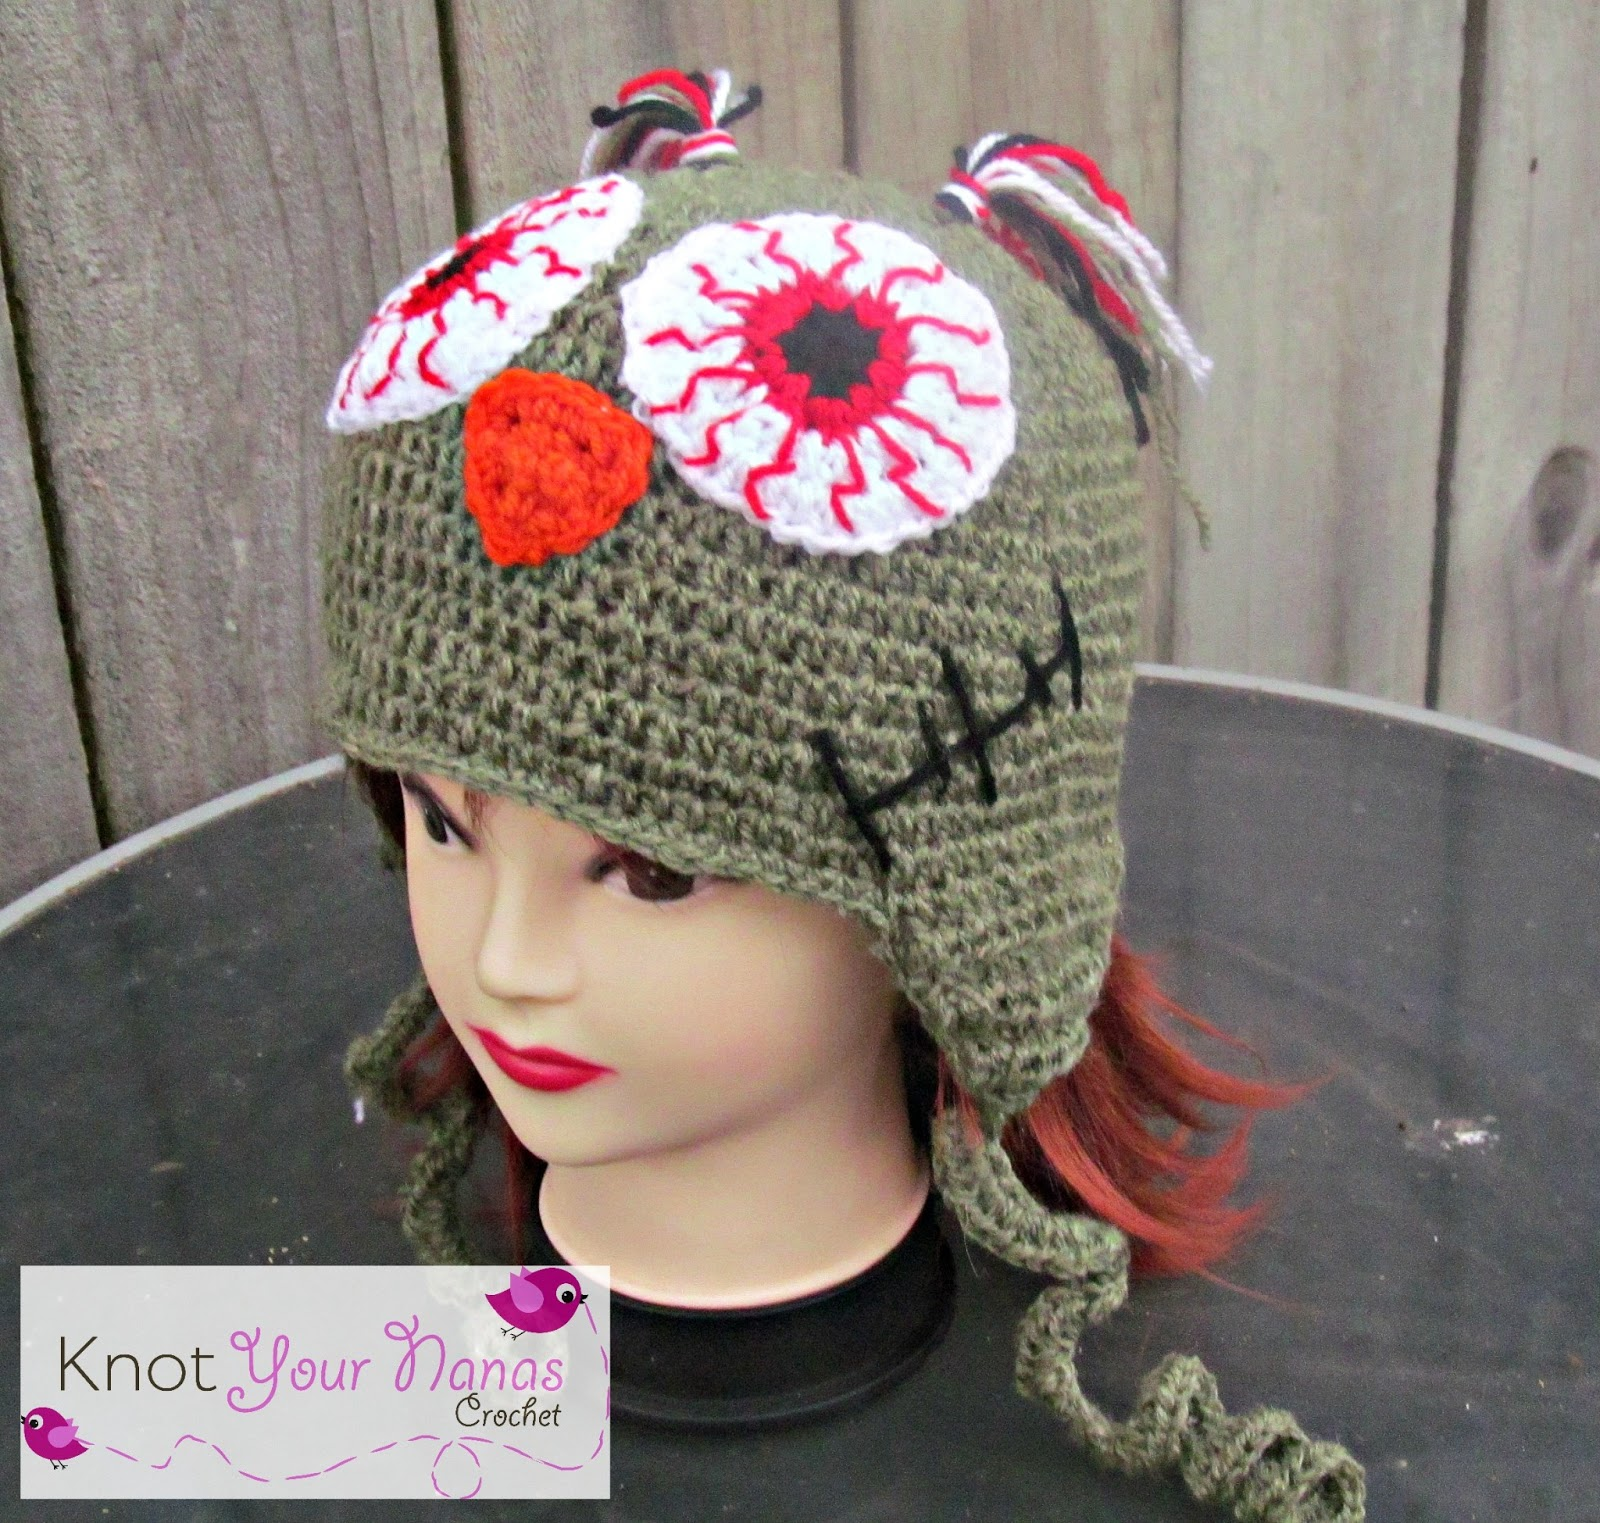 Free Crochet Patterns Zombie : Knot Your Nanas Crochet: Zombie Owl Hat Free Crochet Pattern